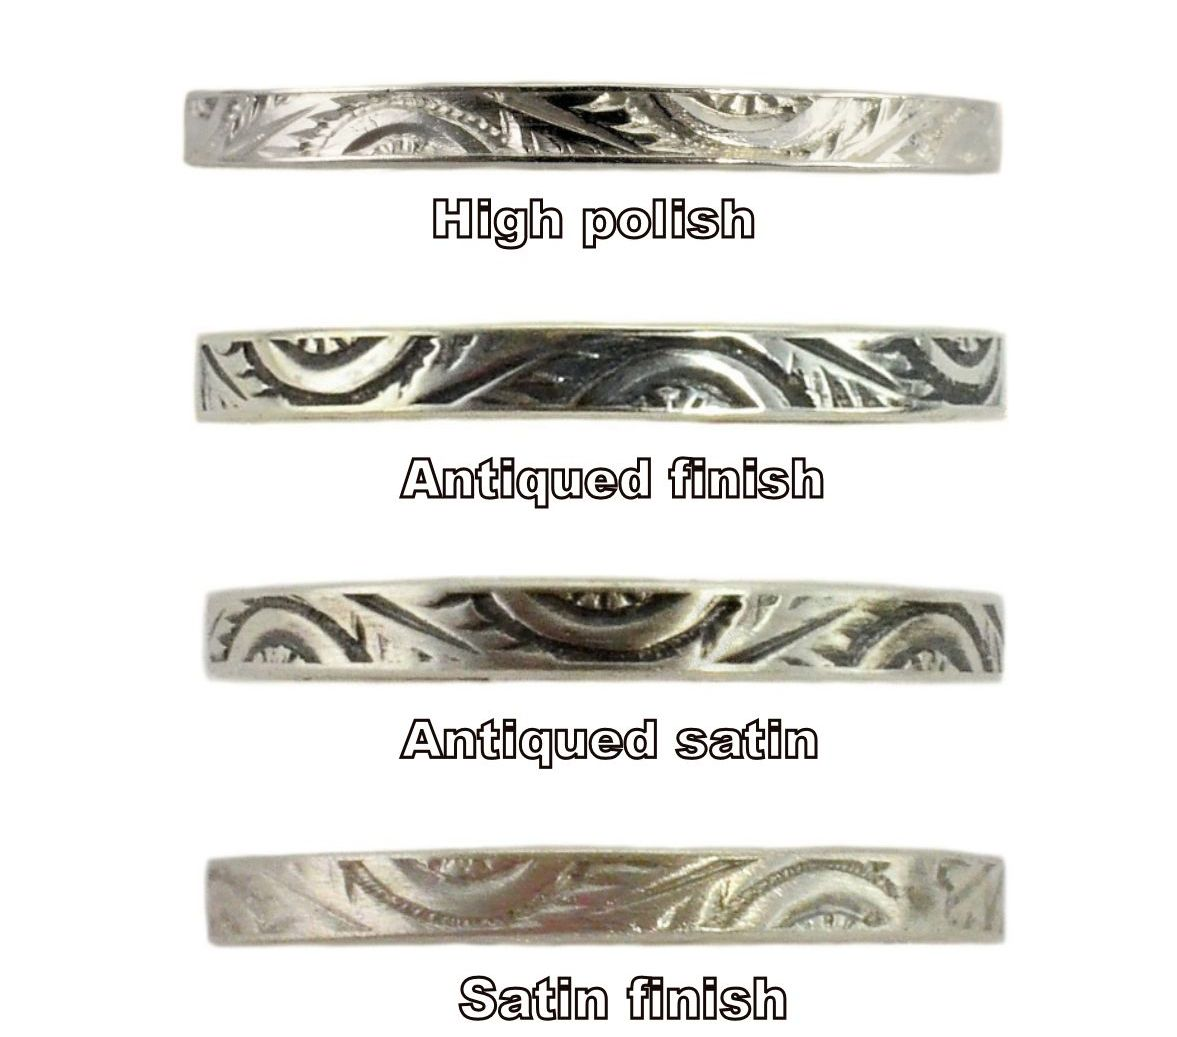 Finish sample - different pattern shown